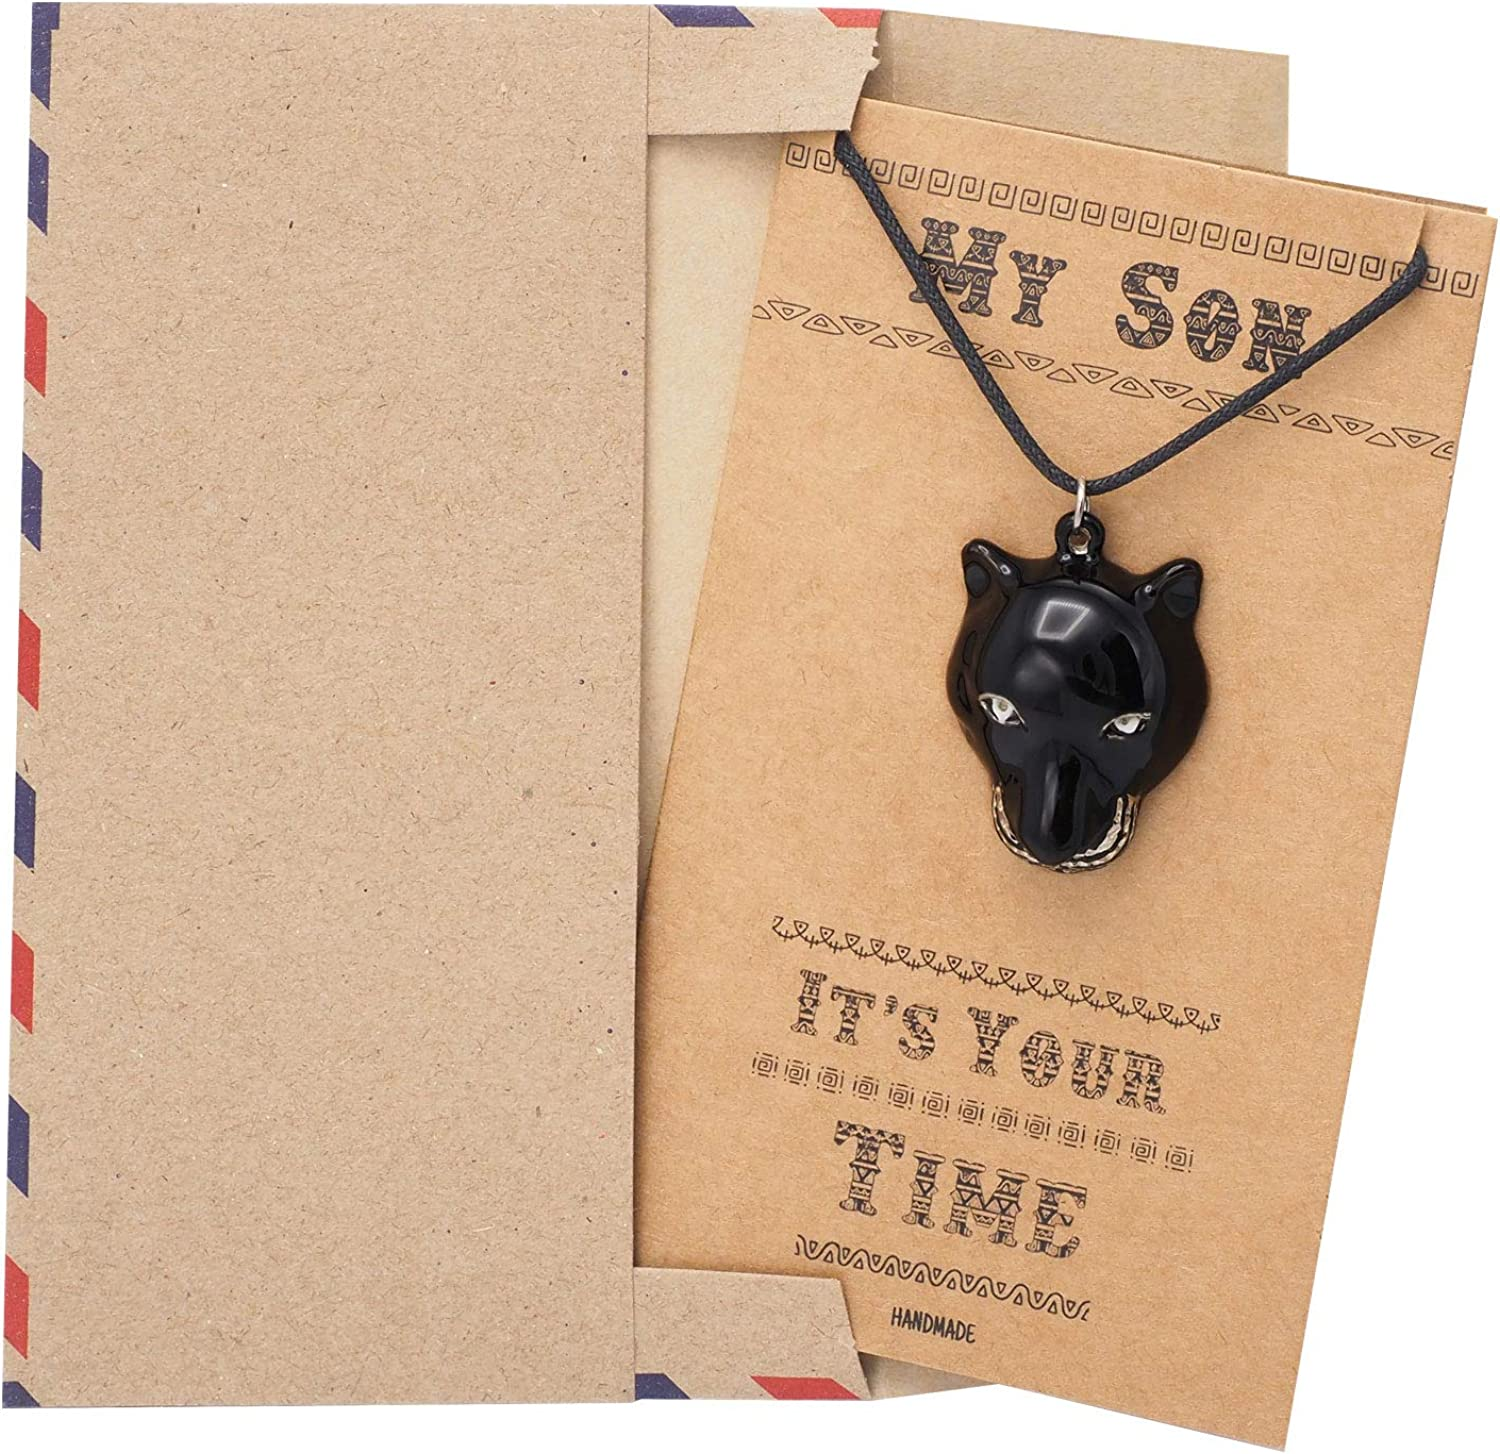 Cosplay Jewelry TChalla Collectibles Gifts for Him with Inspirational Quote on Greeting Card Quan Jewelry Black Panther Wakanda King Super Hero Inspired Necklace